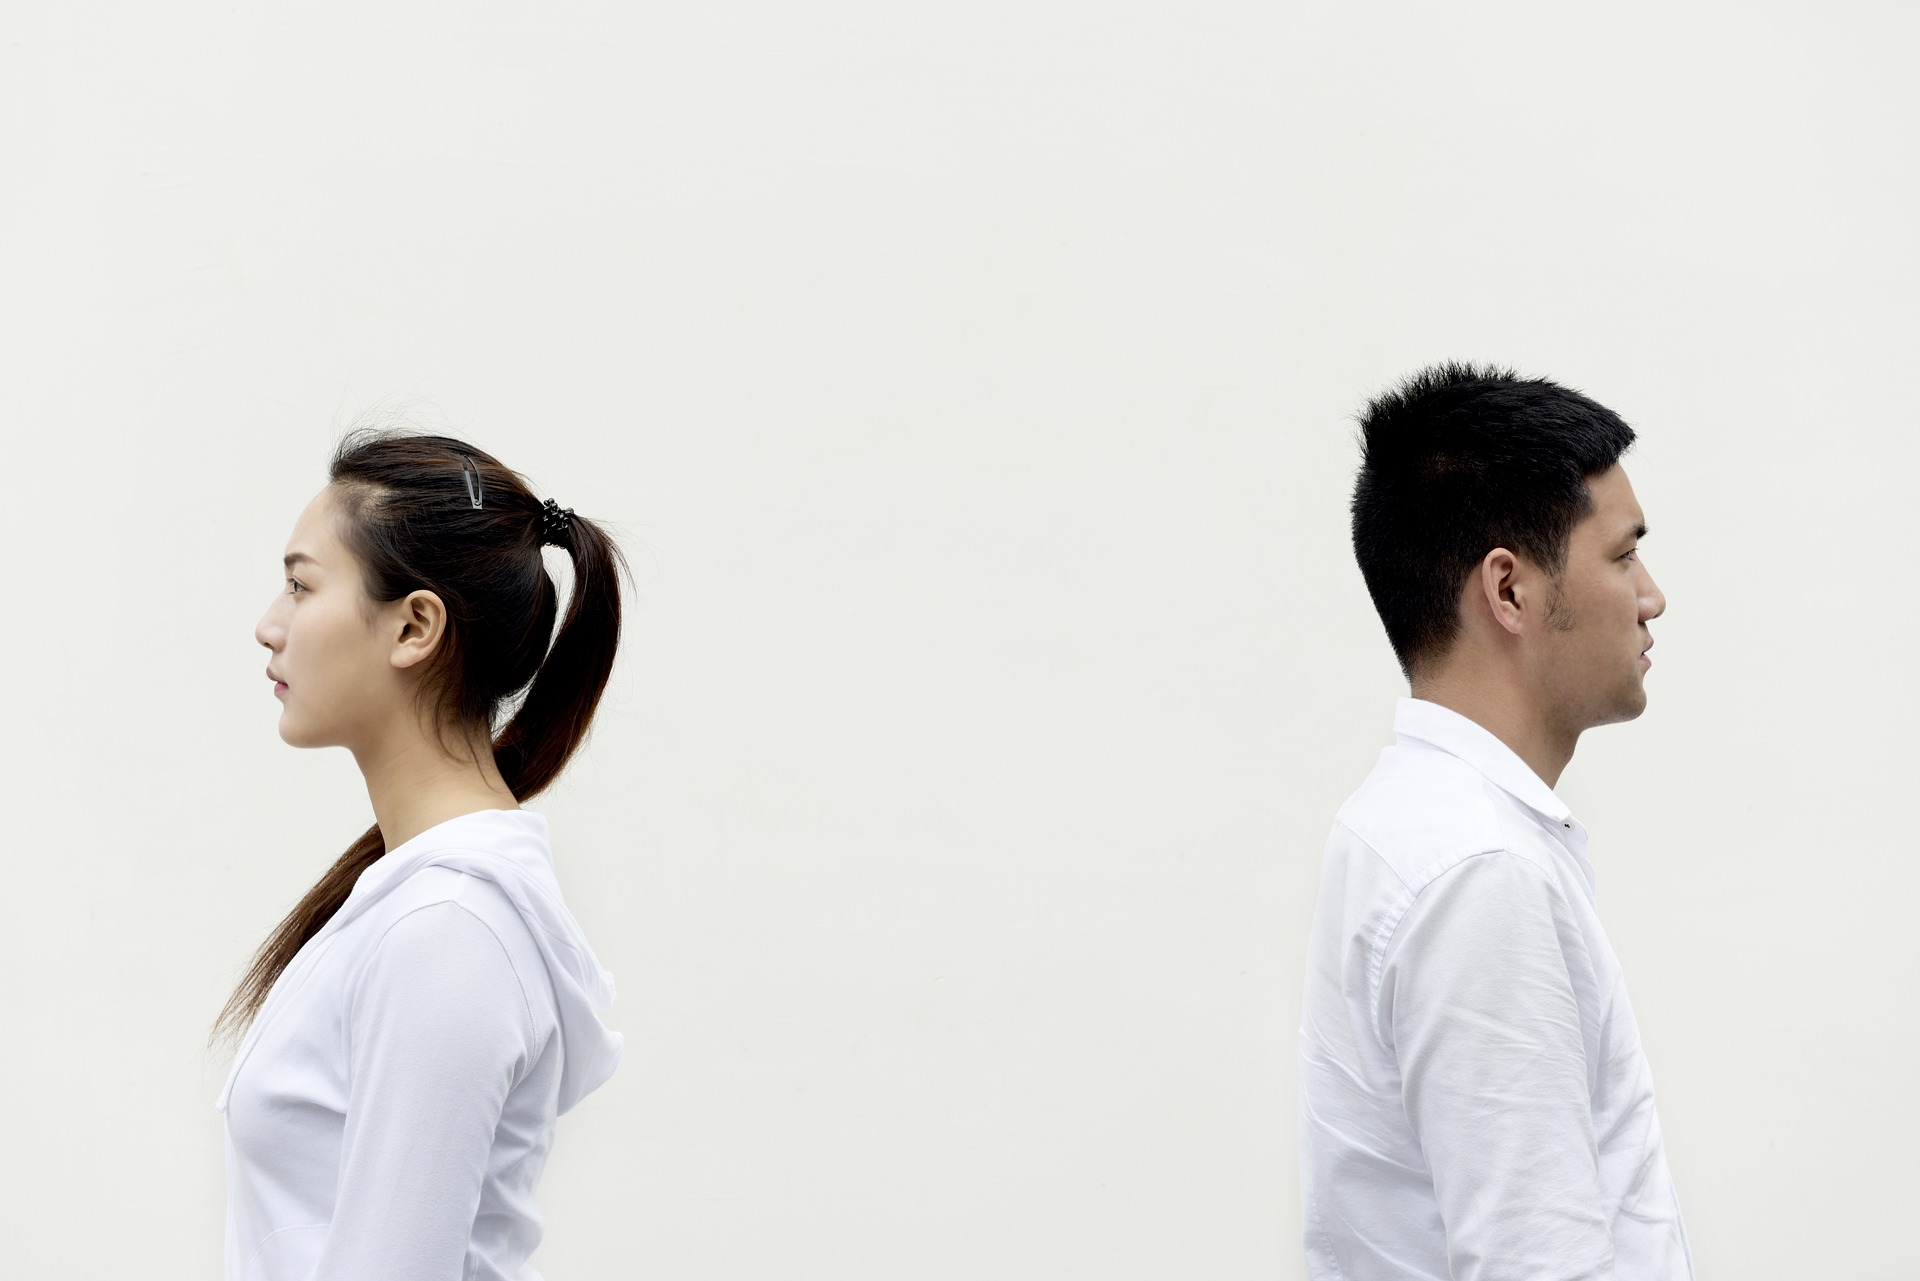 Man and woman in white shirts standing back to back to indicate good posture